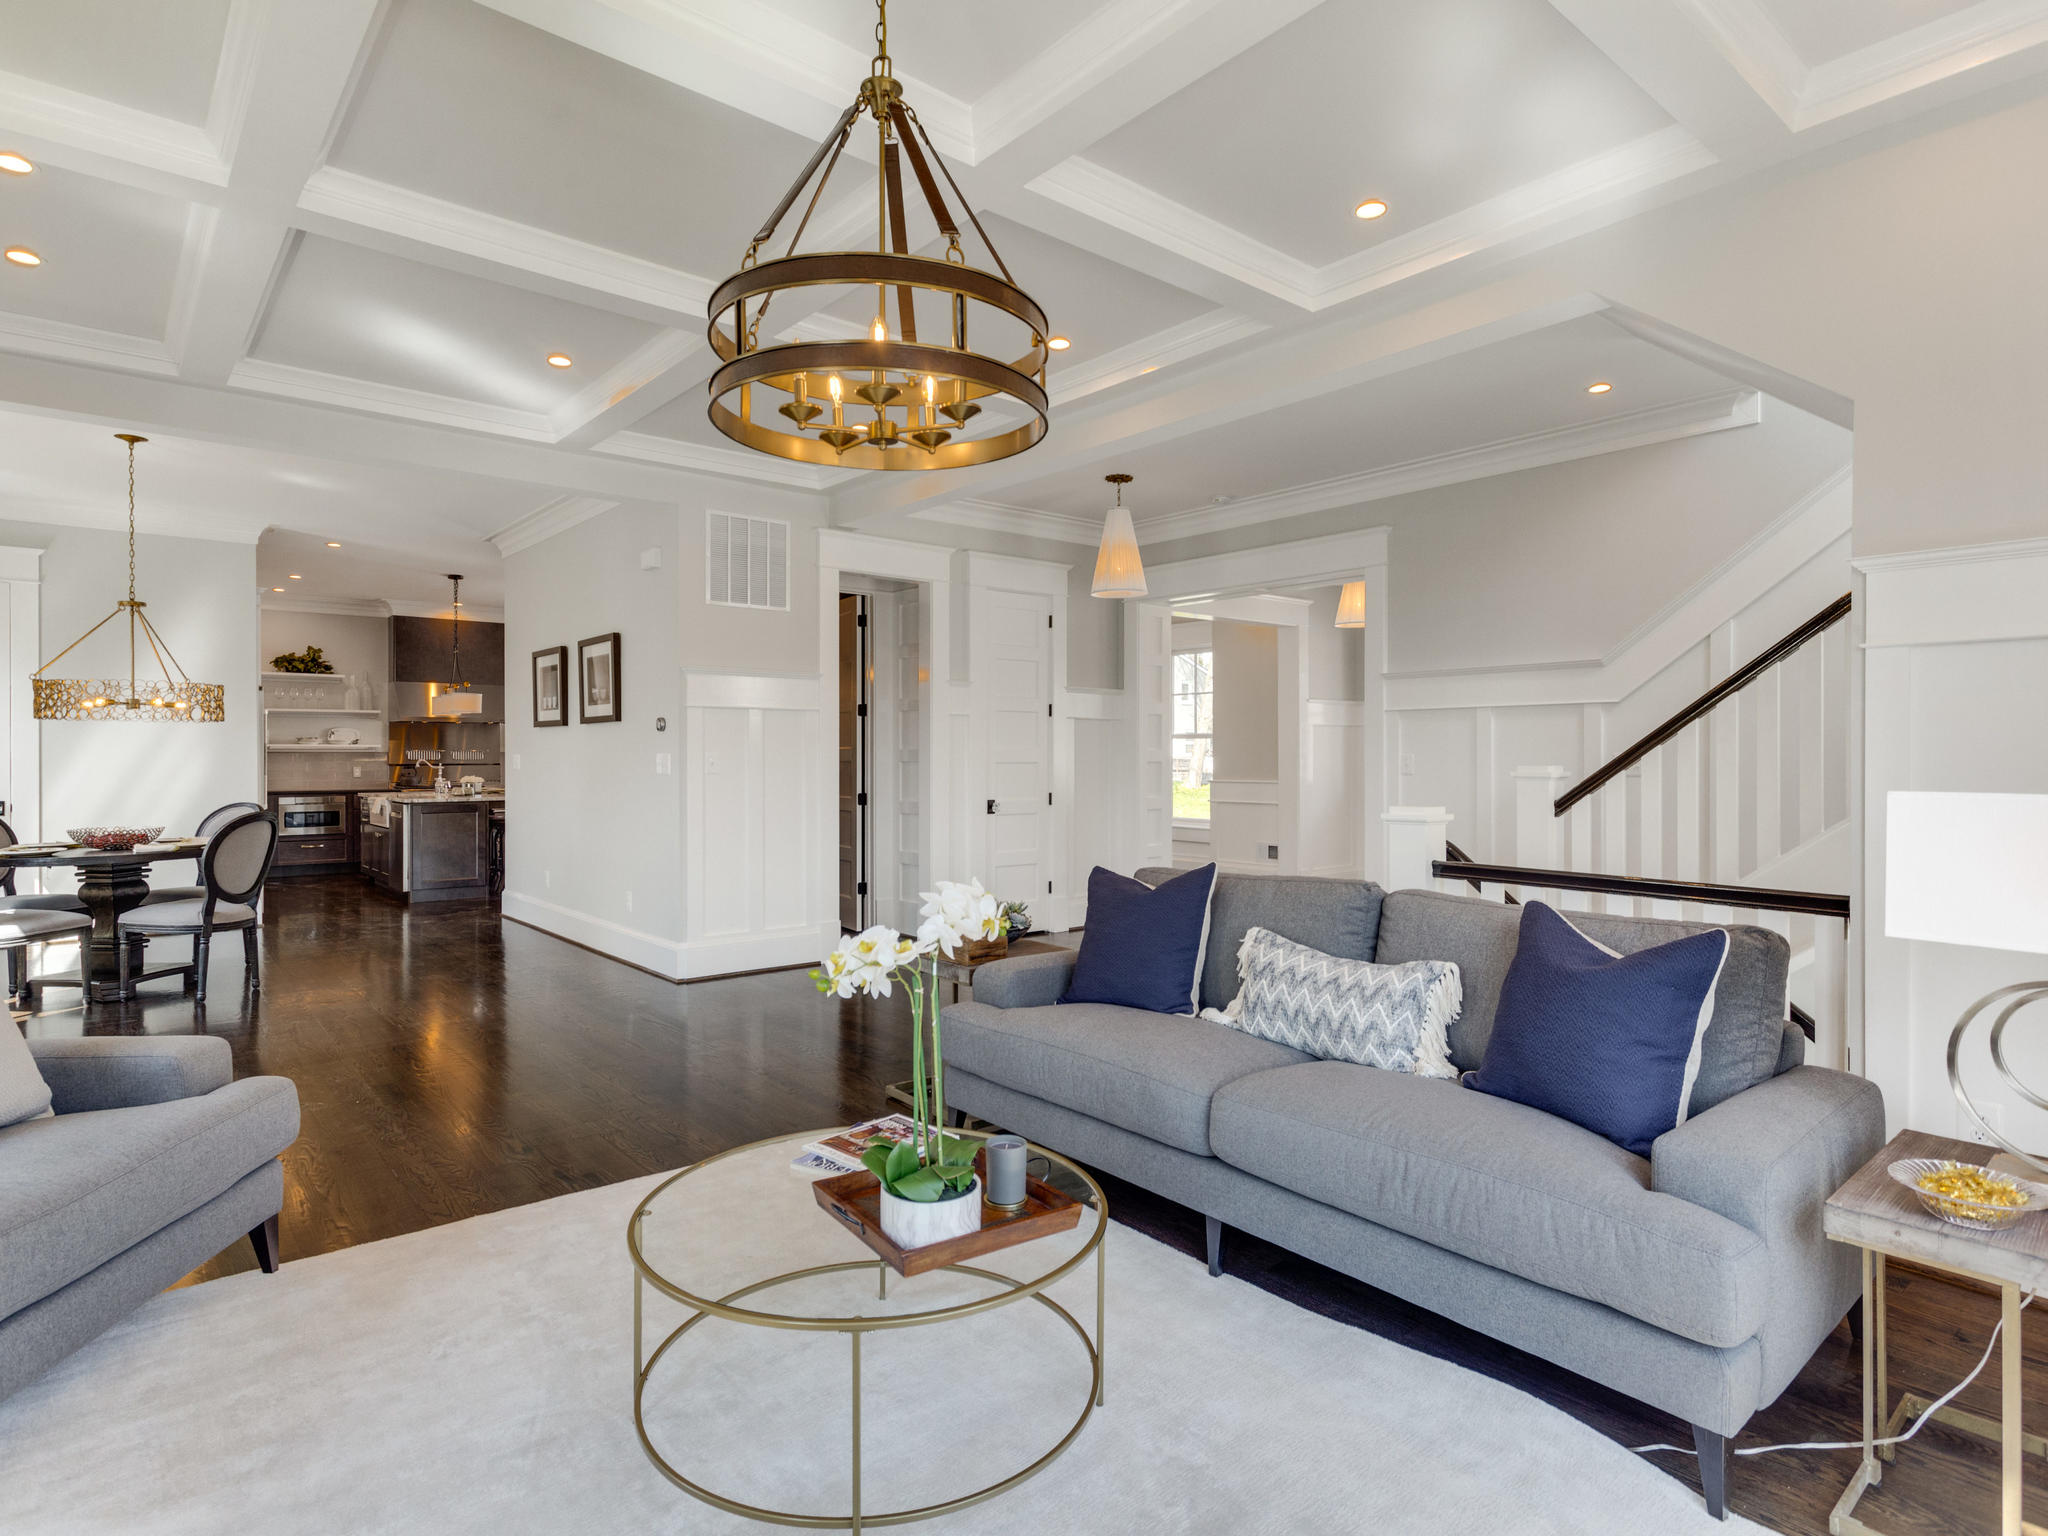 Family Room with coffered ceiling backs up to open staircase. Custom Home by Custom Builder, North Arlington, VA 22207